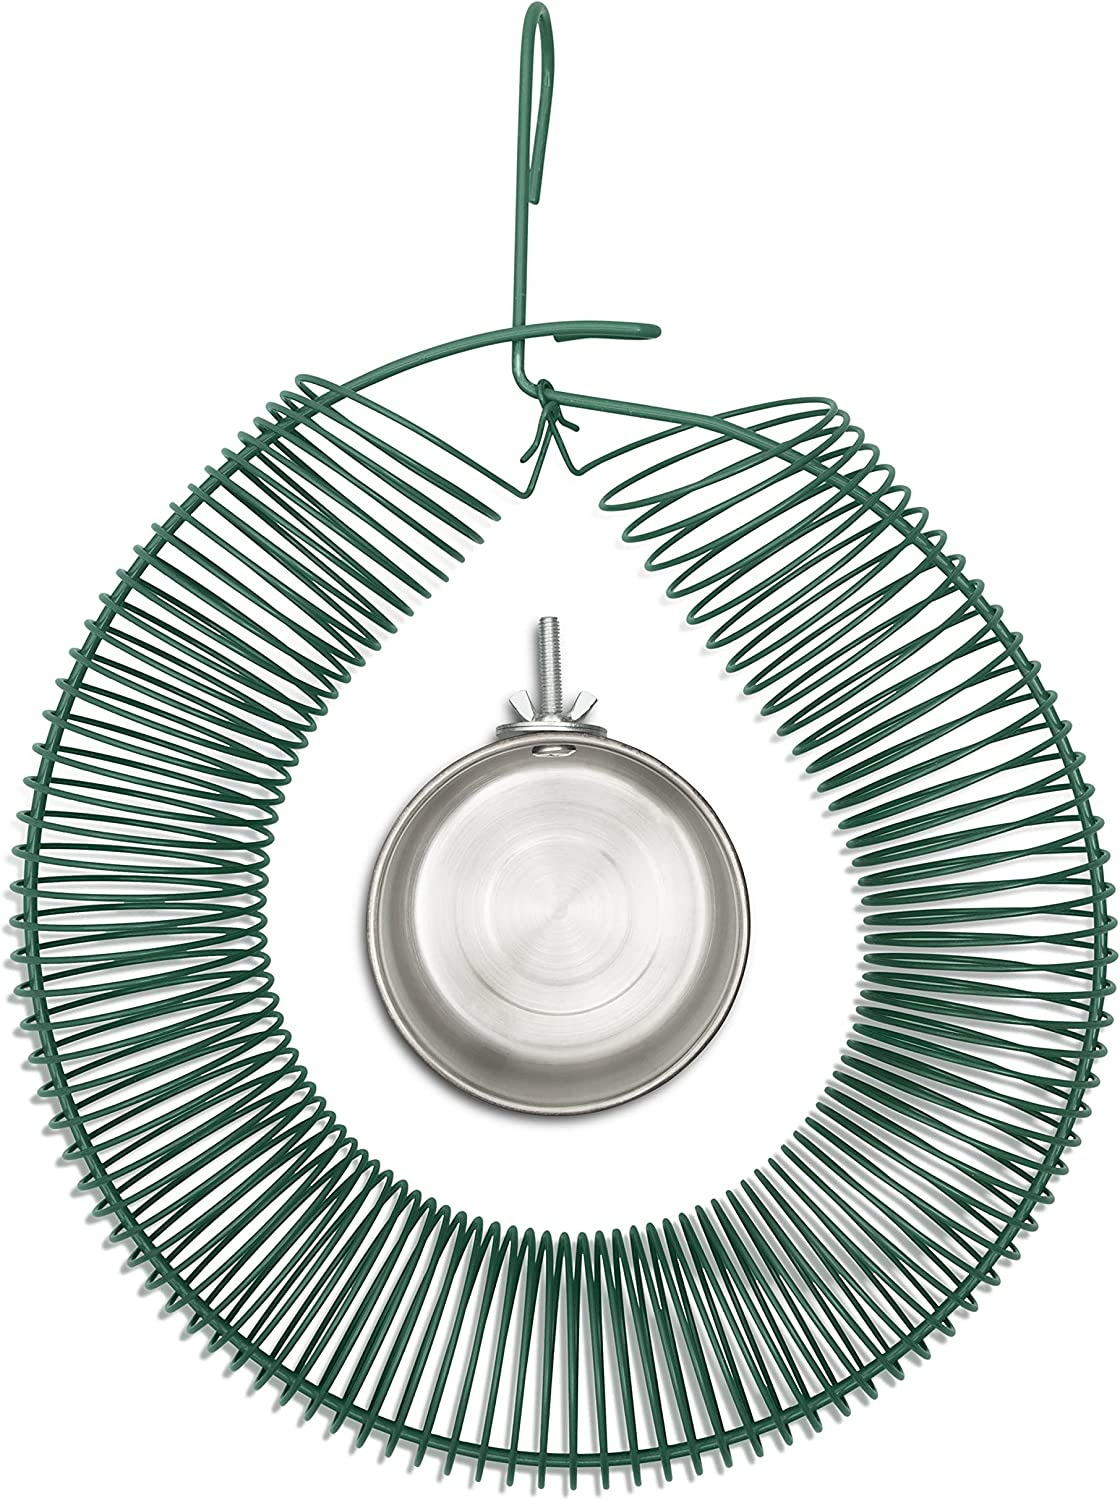 SPLENDIDMODE Hanging Wreath Bird, Squirrel or Chipmunk Feeder - for Whole Peanut and Suet Wreath Style Feeder - Complete with Stainless Steel Water Cup